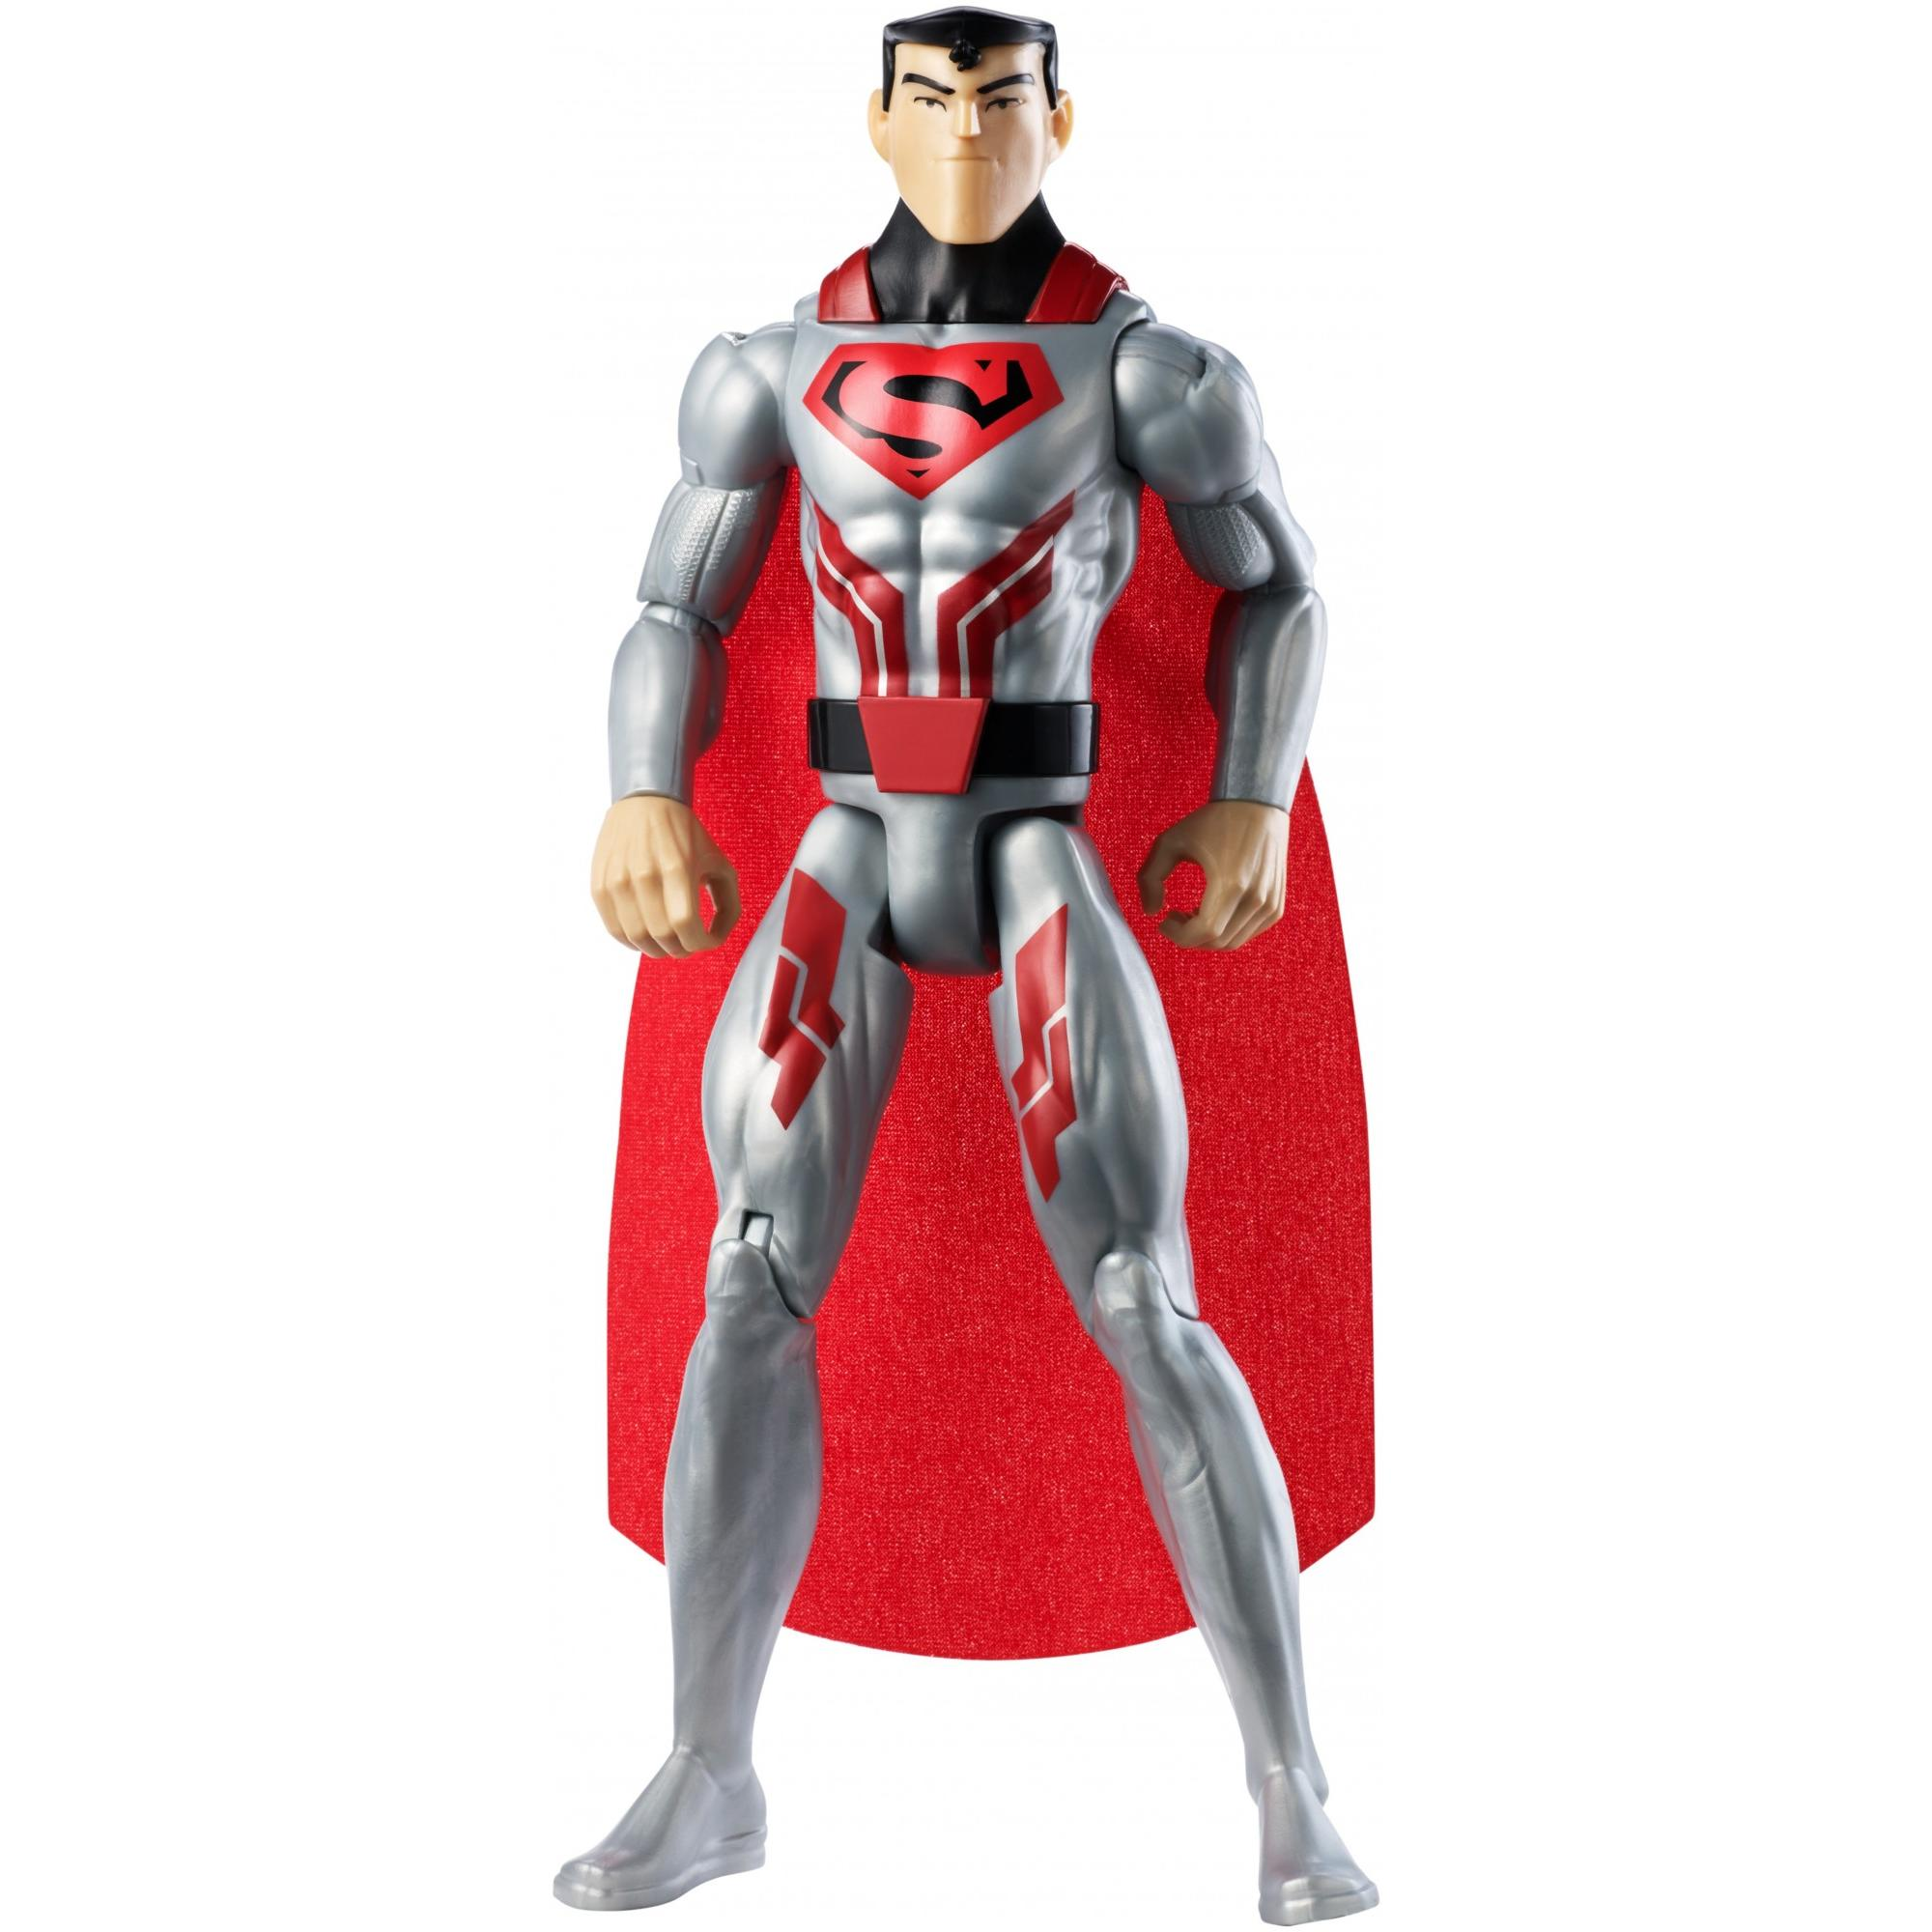 Justice League Action Steel Suit Superman Figure